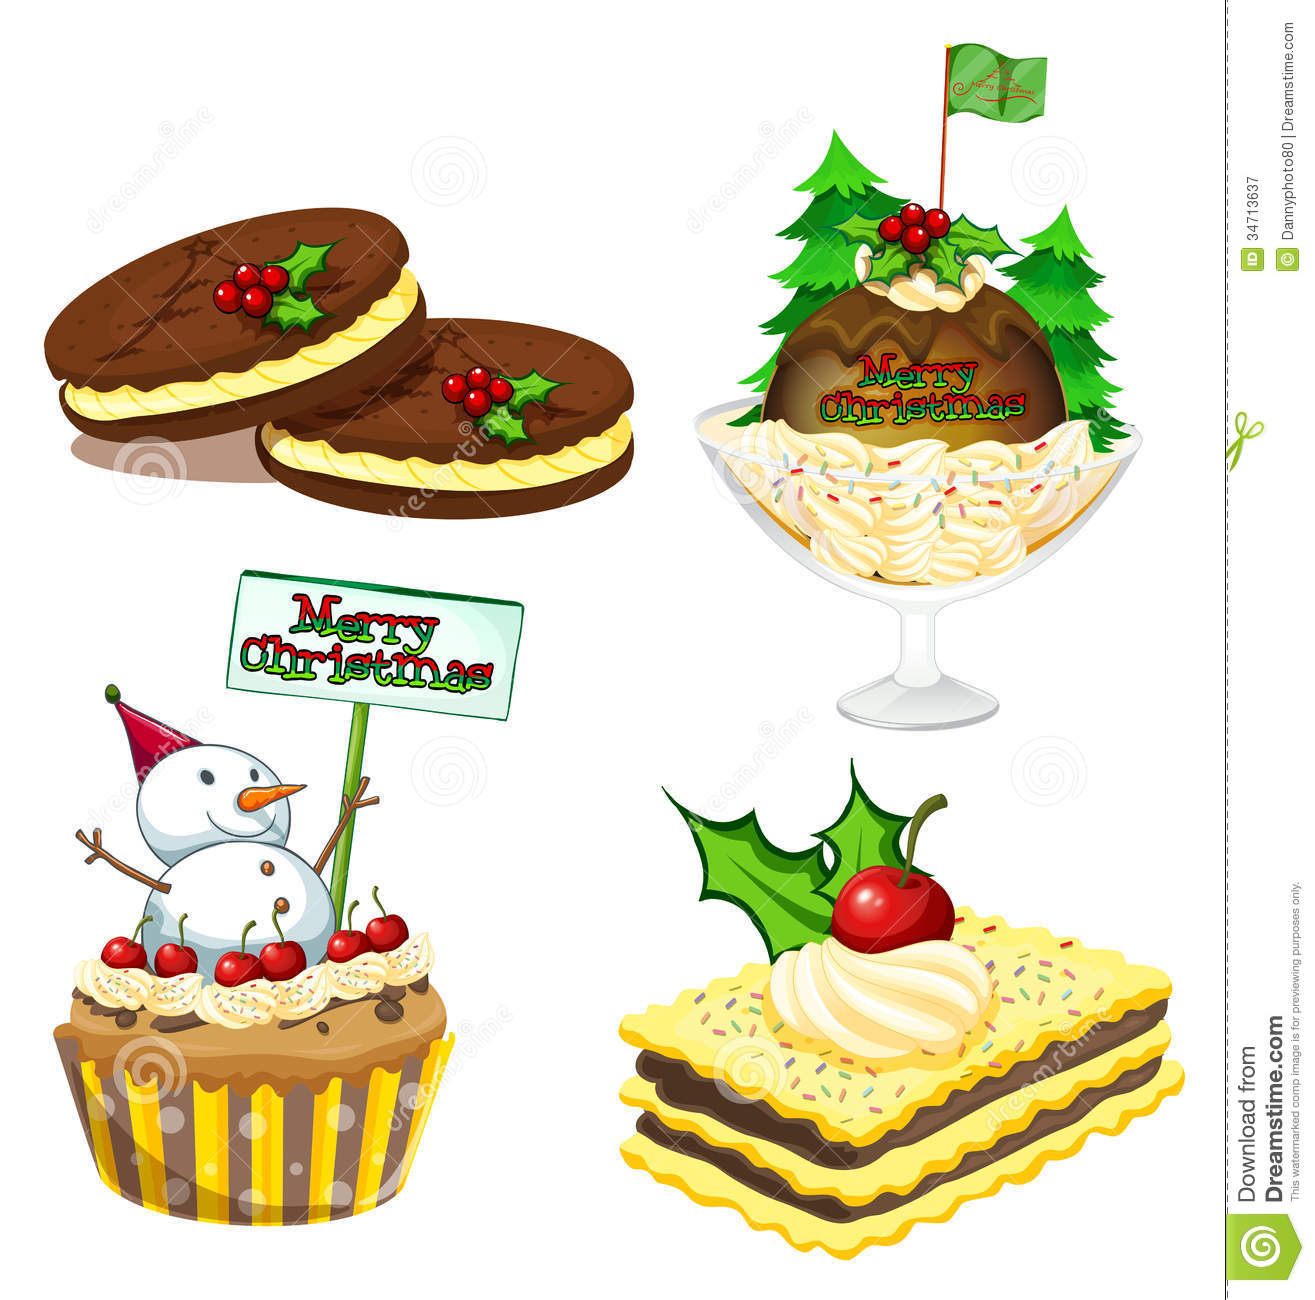 Christmas desserts clipart.